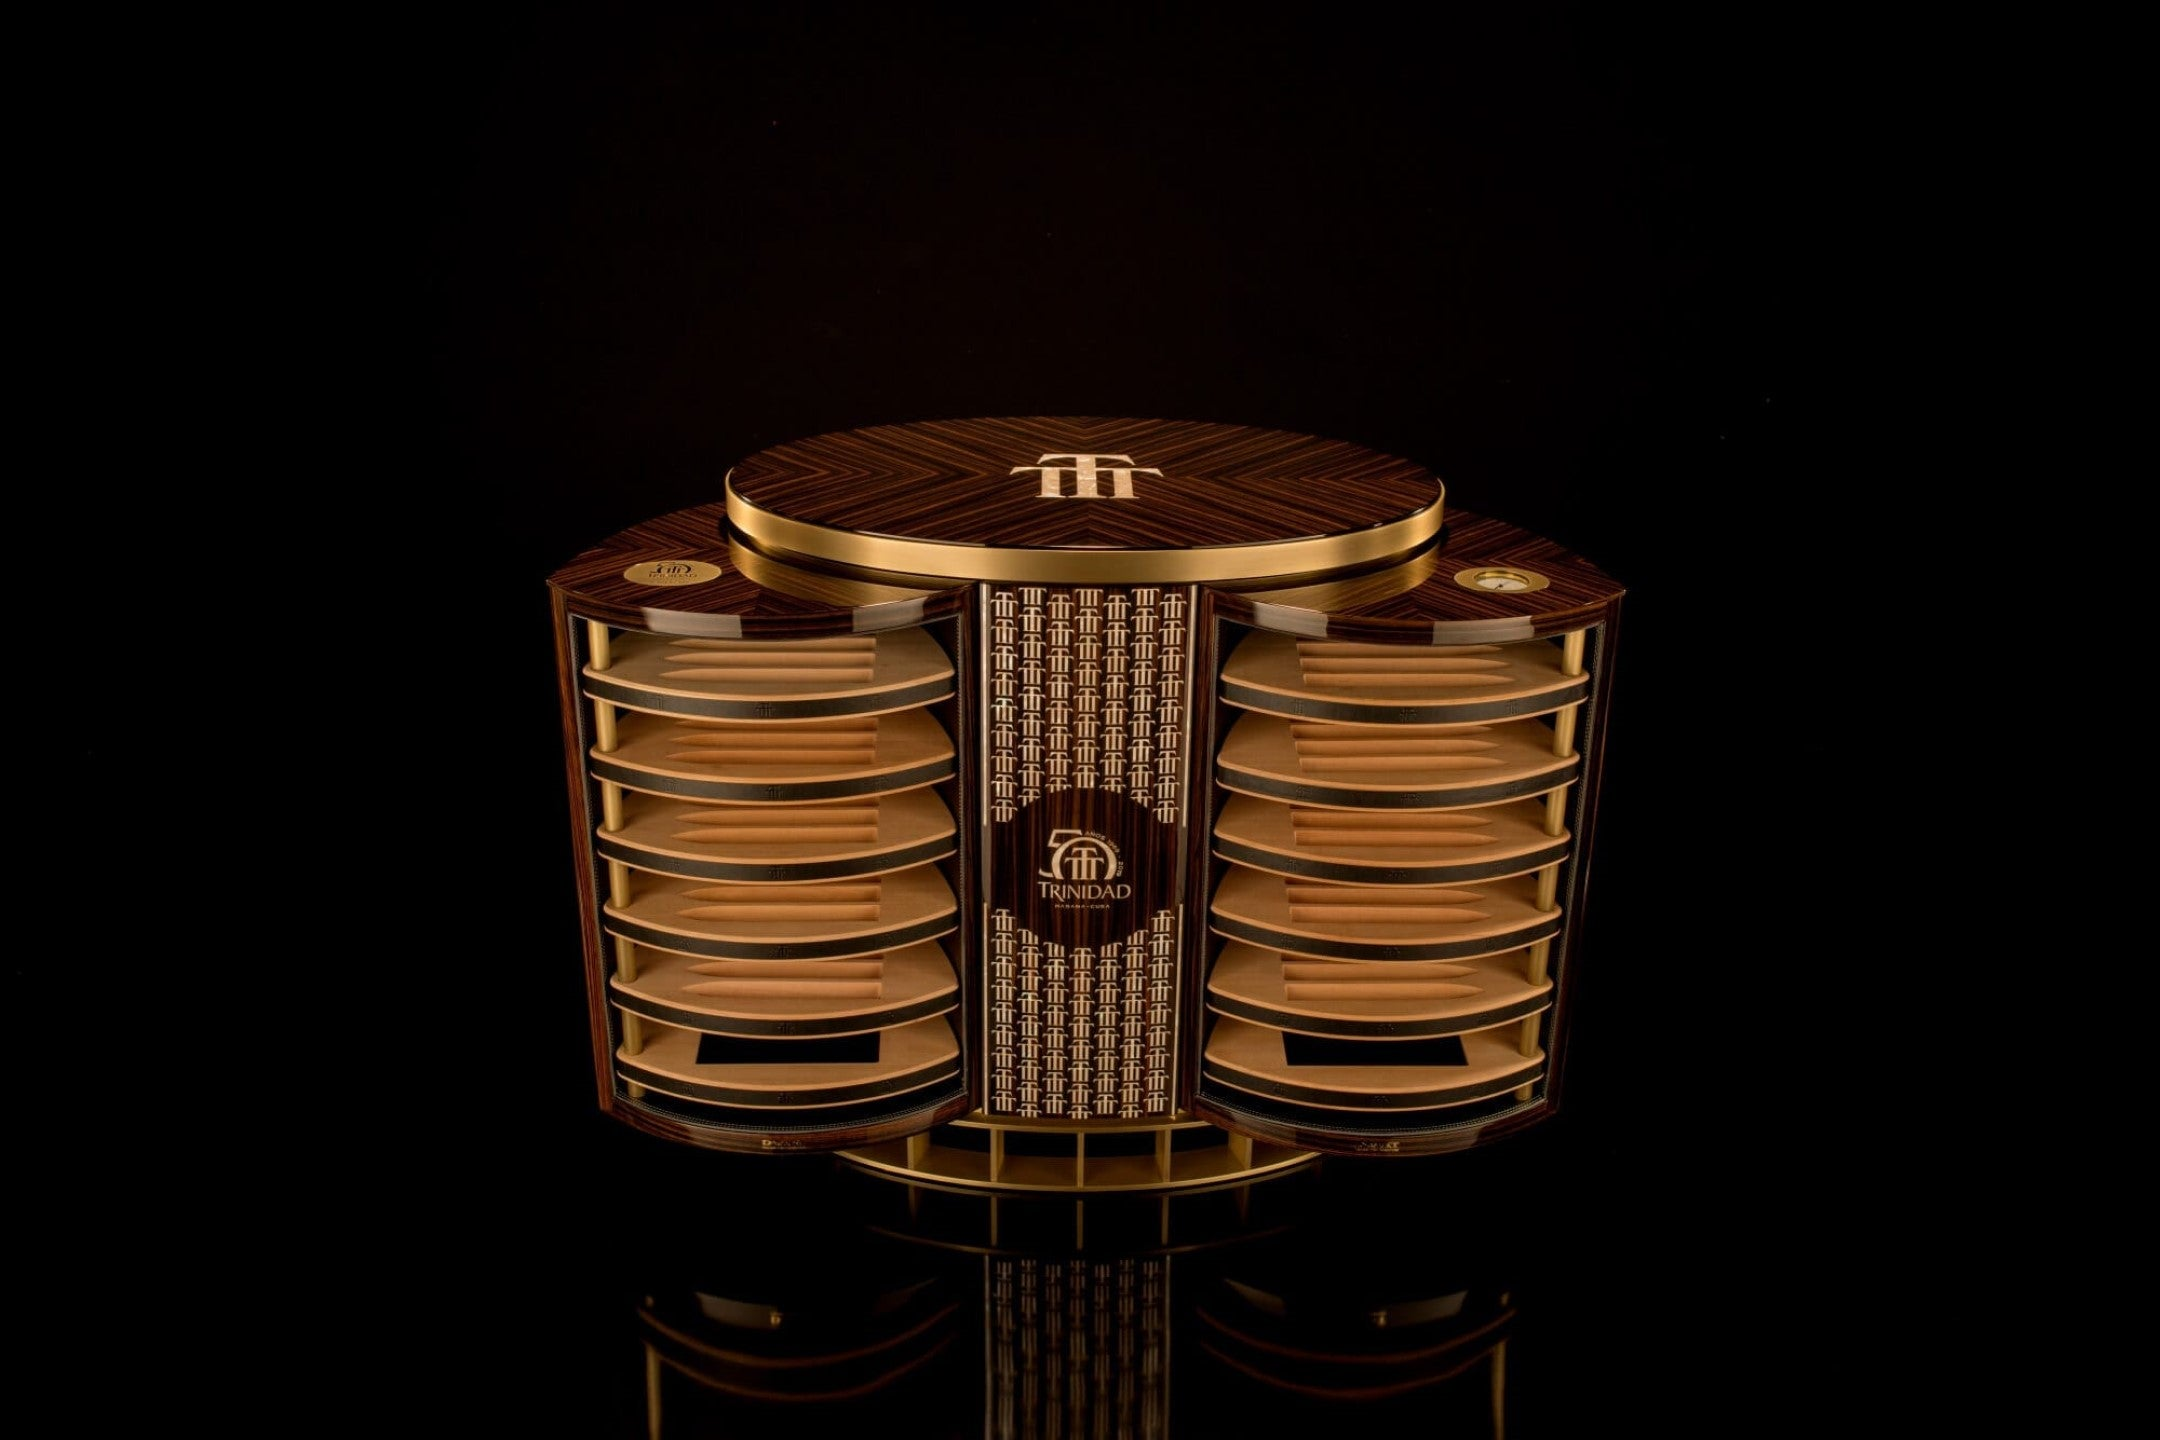 The Trinidad 50th Anniversary Humidor commissioned by Habanos S.A. and created by DeART.